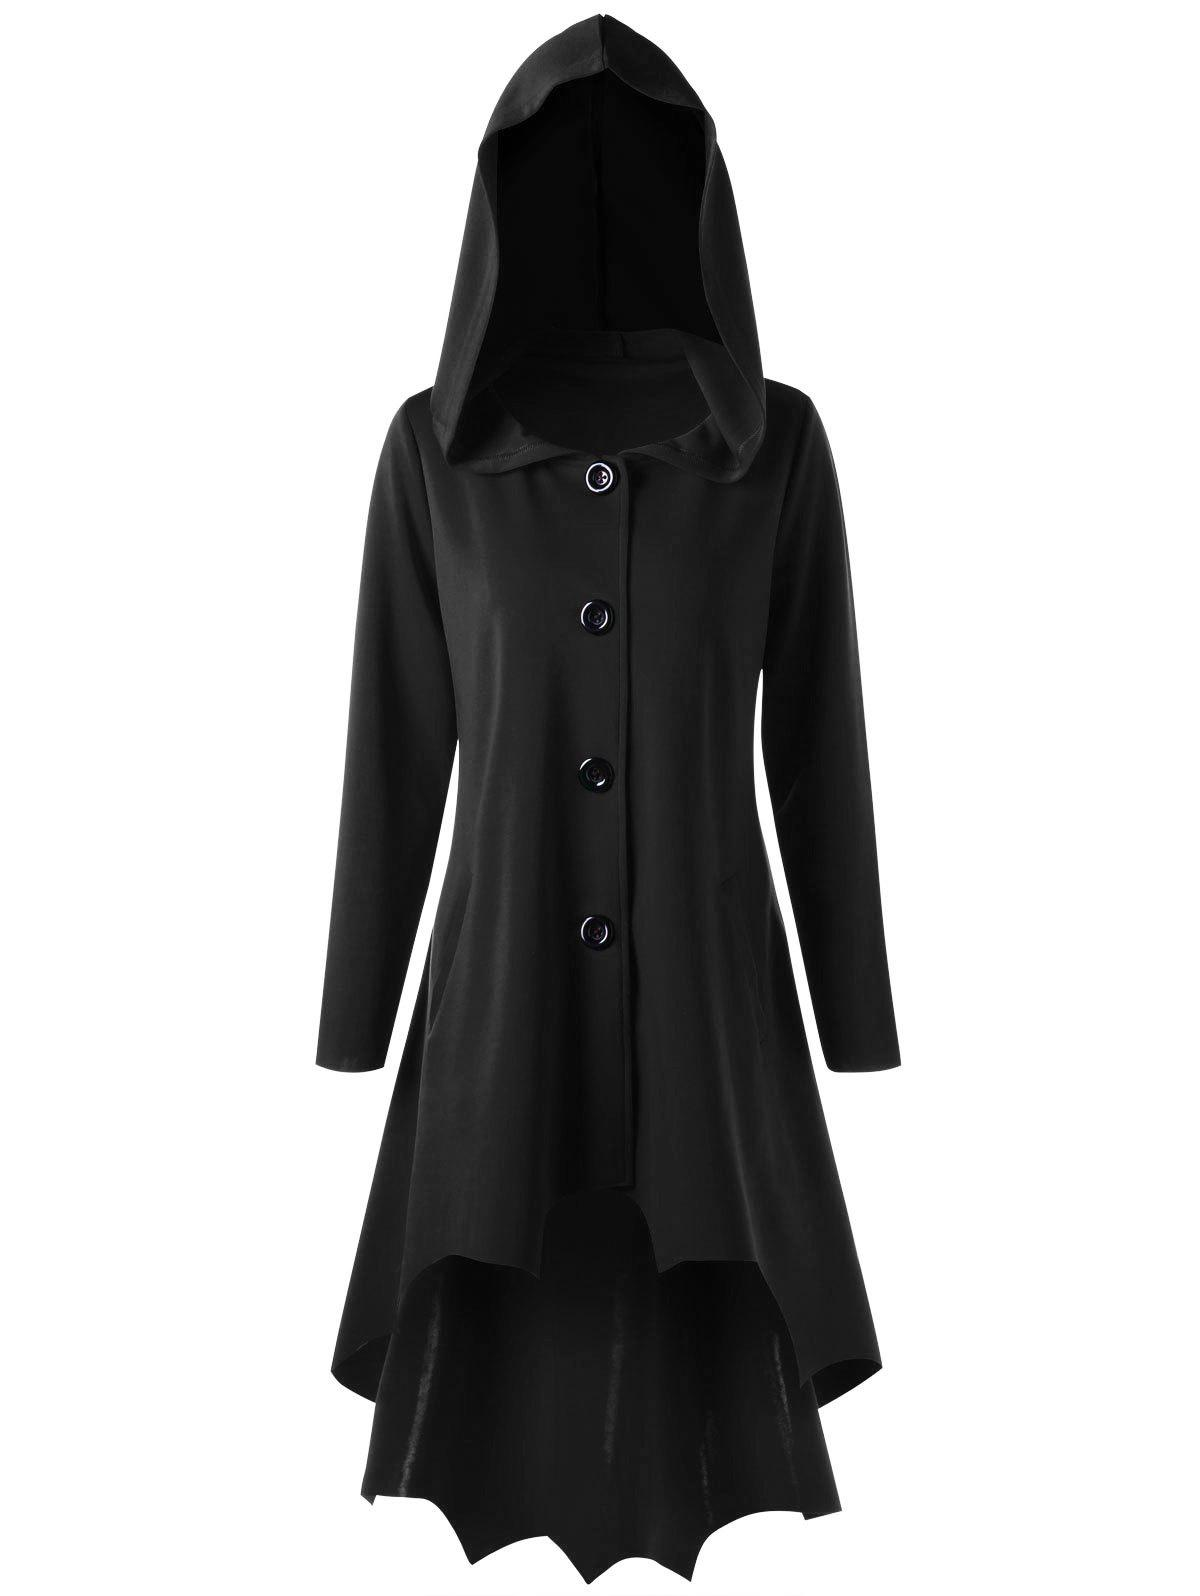 Lace Up Dip Hem Hooded CoatWOMEN<br><br>Size: 2XL; Color: BLACK; Clothes Type: Others; Material: Polyester,Spandex; Type: Slim; Shirt Length: Long; Sleeve Length: Full; Collar: Hooded; Pattern Type: Solid; Style: Novelty; Season: Fall,Spring; Weight: 0.9500kg; Package Contents: 1 x Coat;